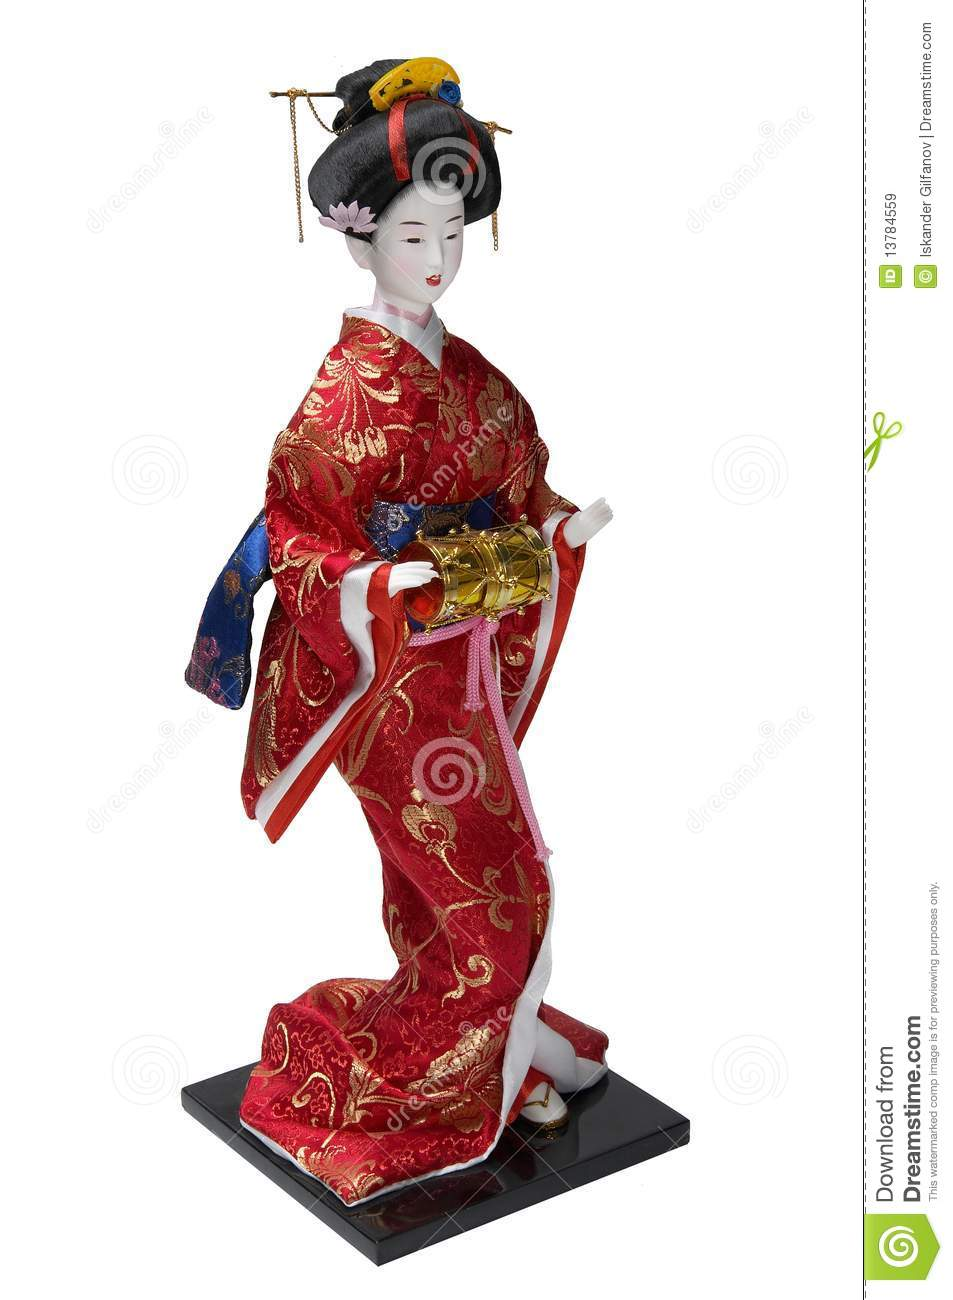 Porcelain Geisha Figurine Royalty Free Stock Images